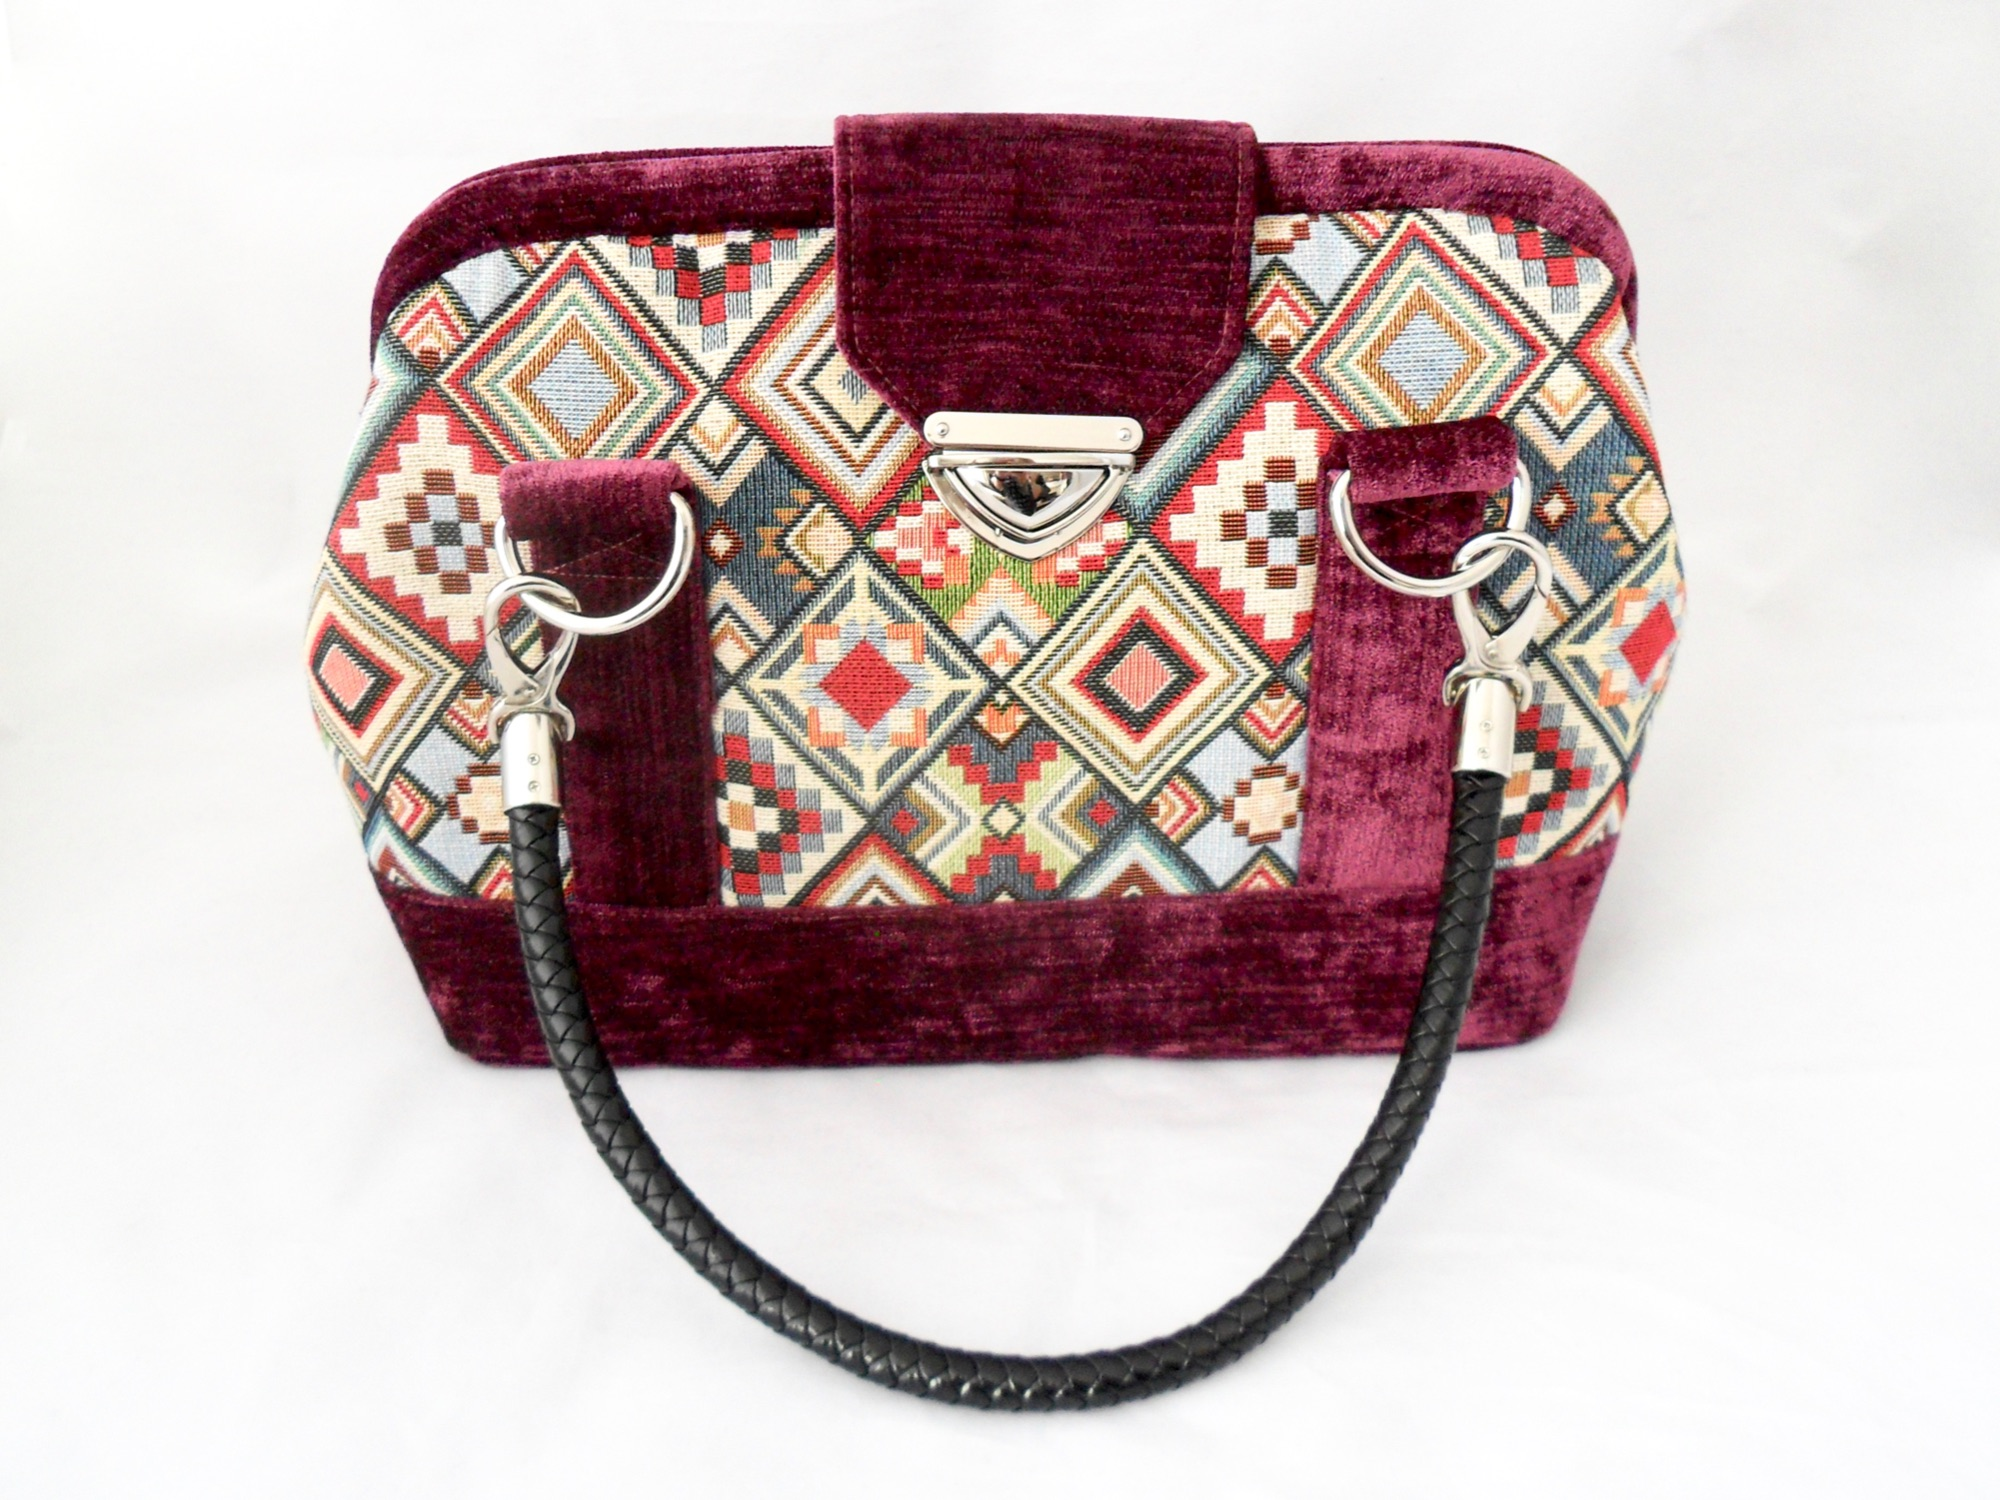 Geometric patterned handbag